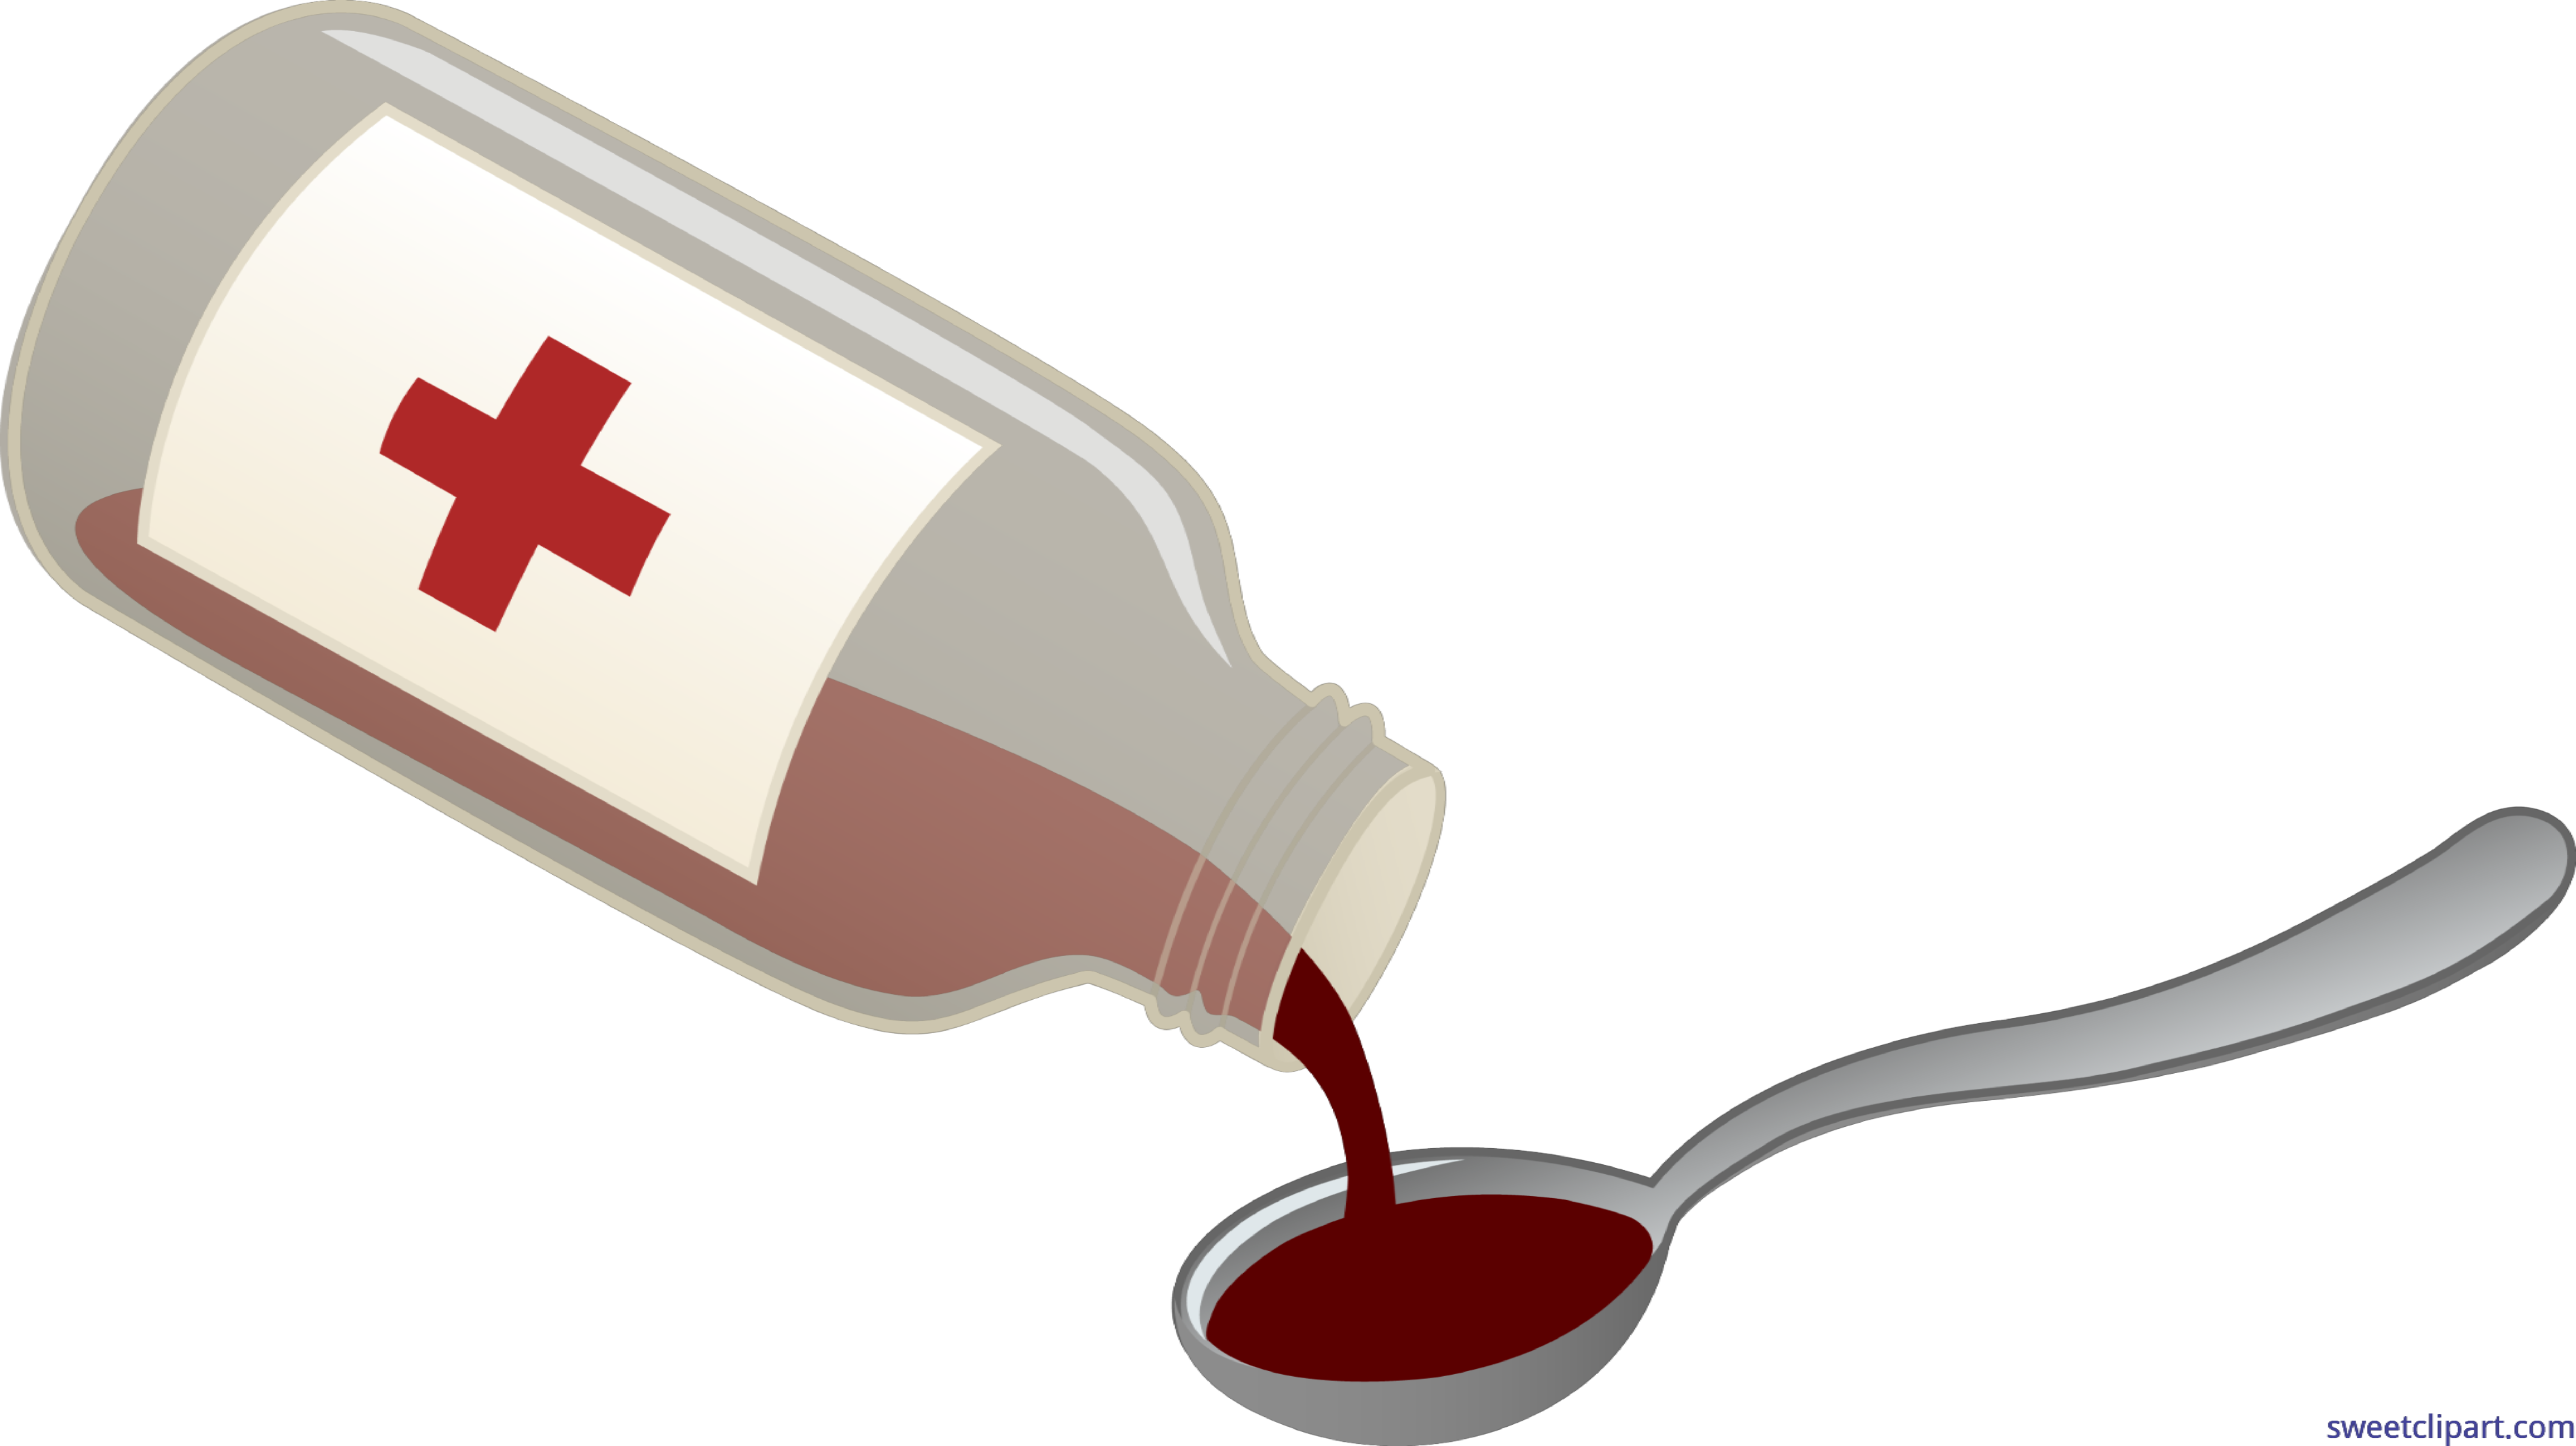 Flag clipart post. Cough syrup spoon clip